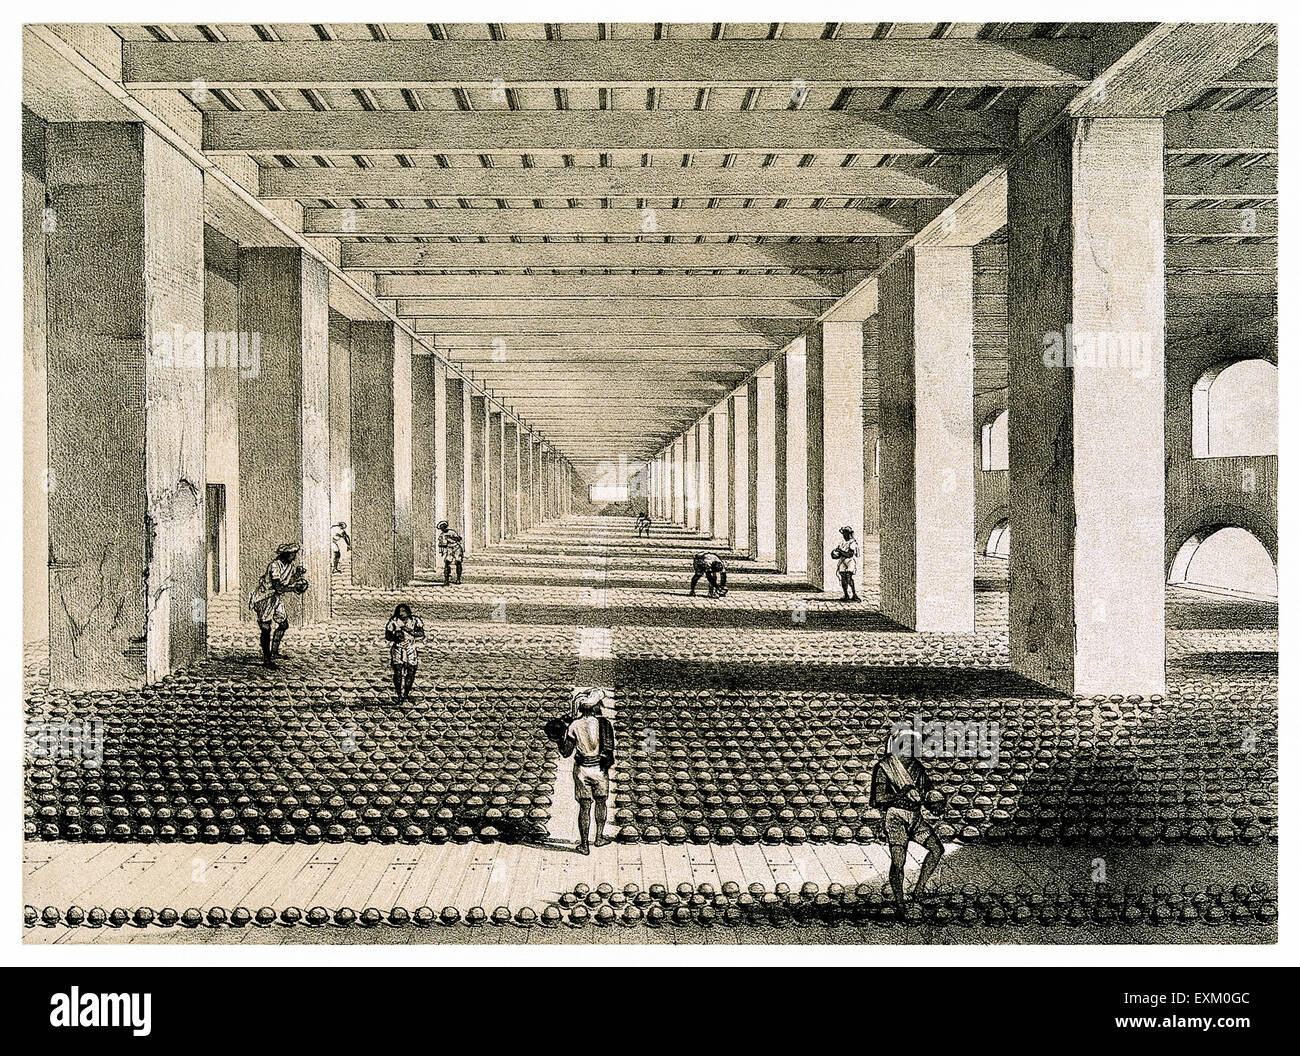 'The Drying Room' where Opium balls from the balling room (see EXMH4T) arrives to dry before being stacked. - Stock Image